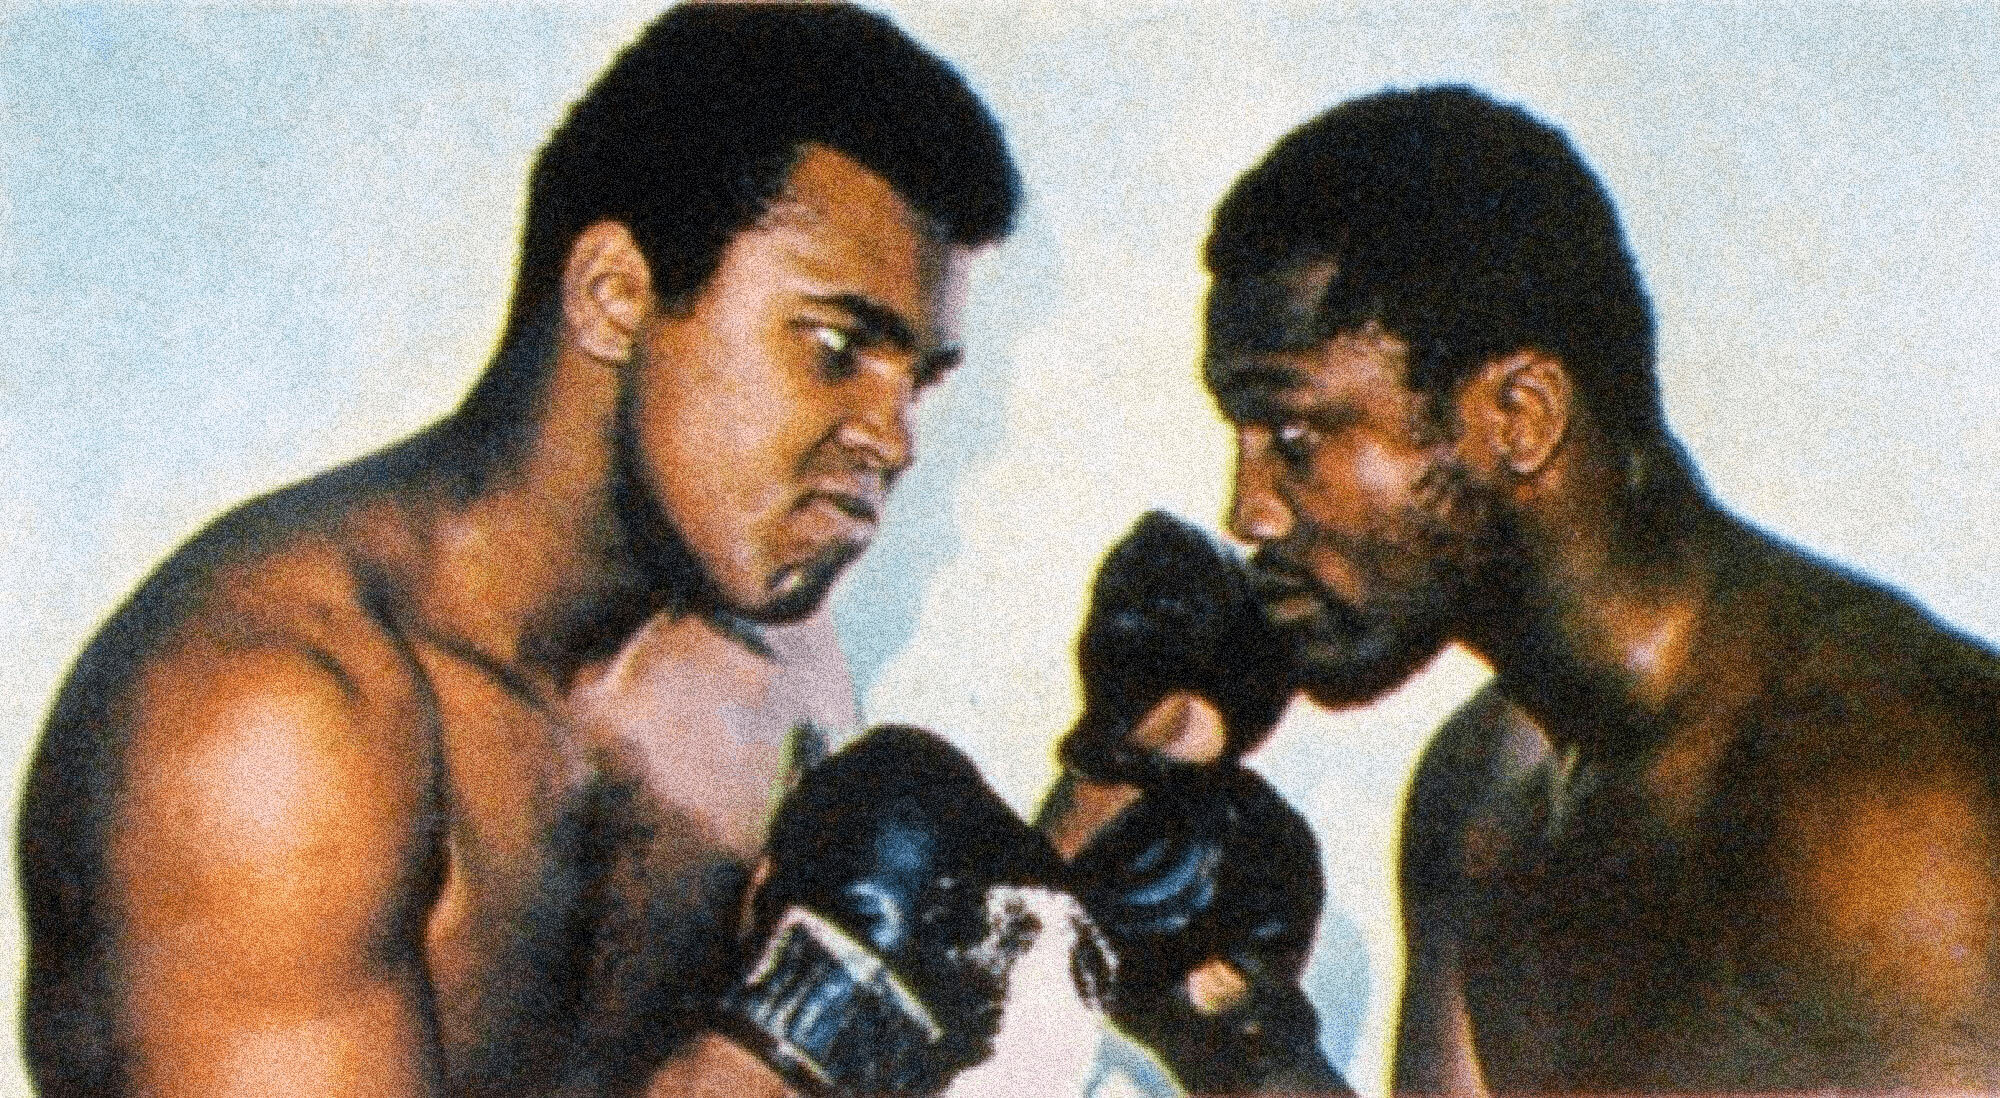 Muhammad Ali and Joe Frazier facing off in a boxing match.